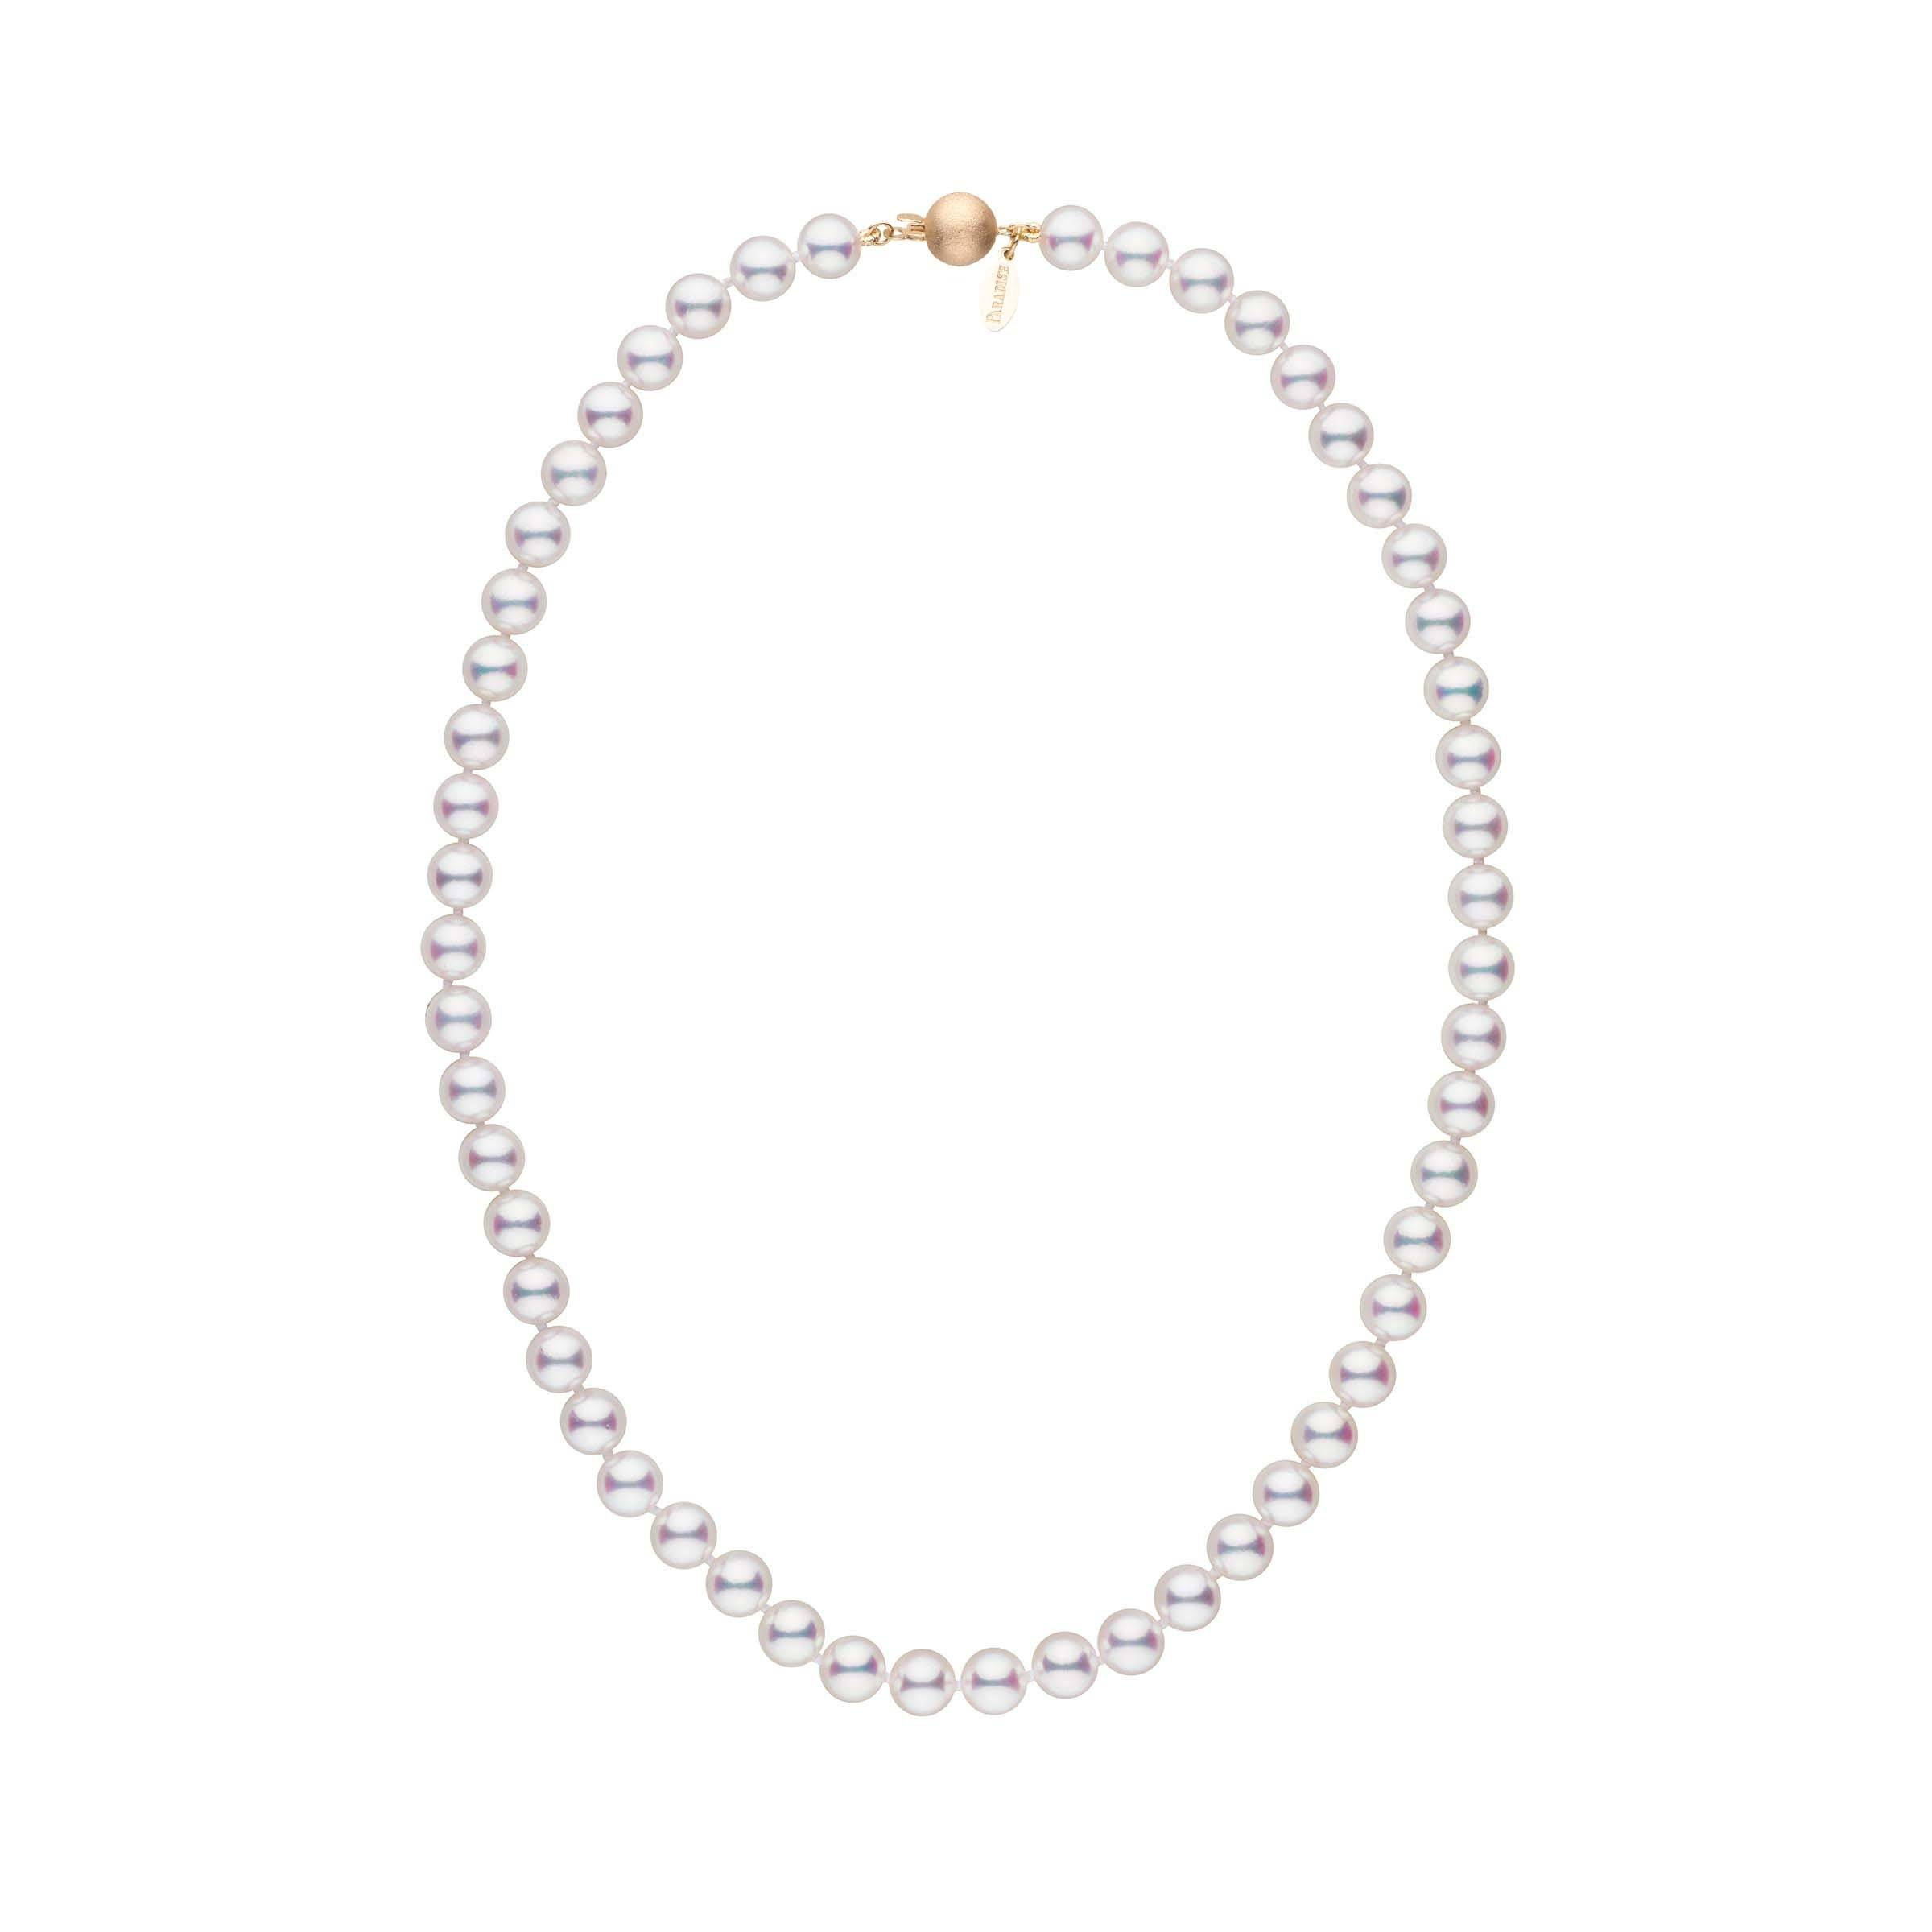 7.0-7.5 mm 16 Inch White Hanadama Akoya Pearl Necklace